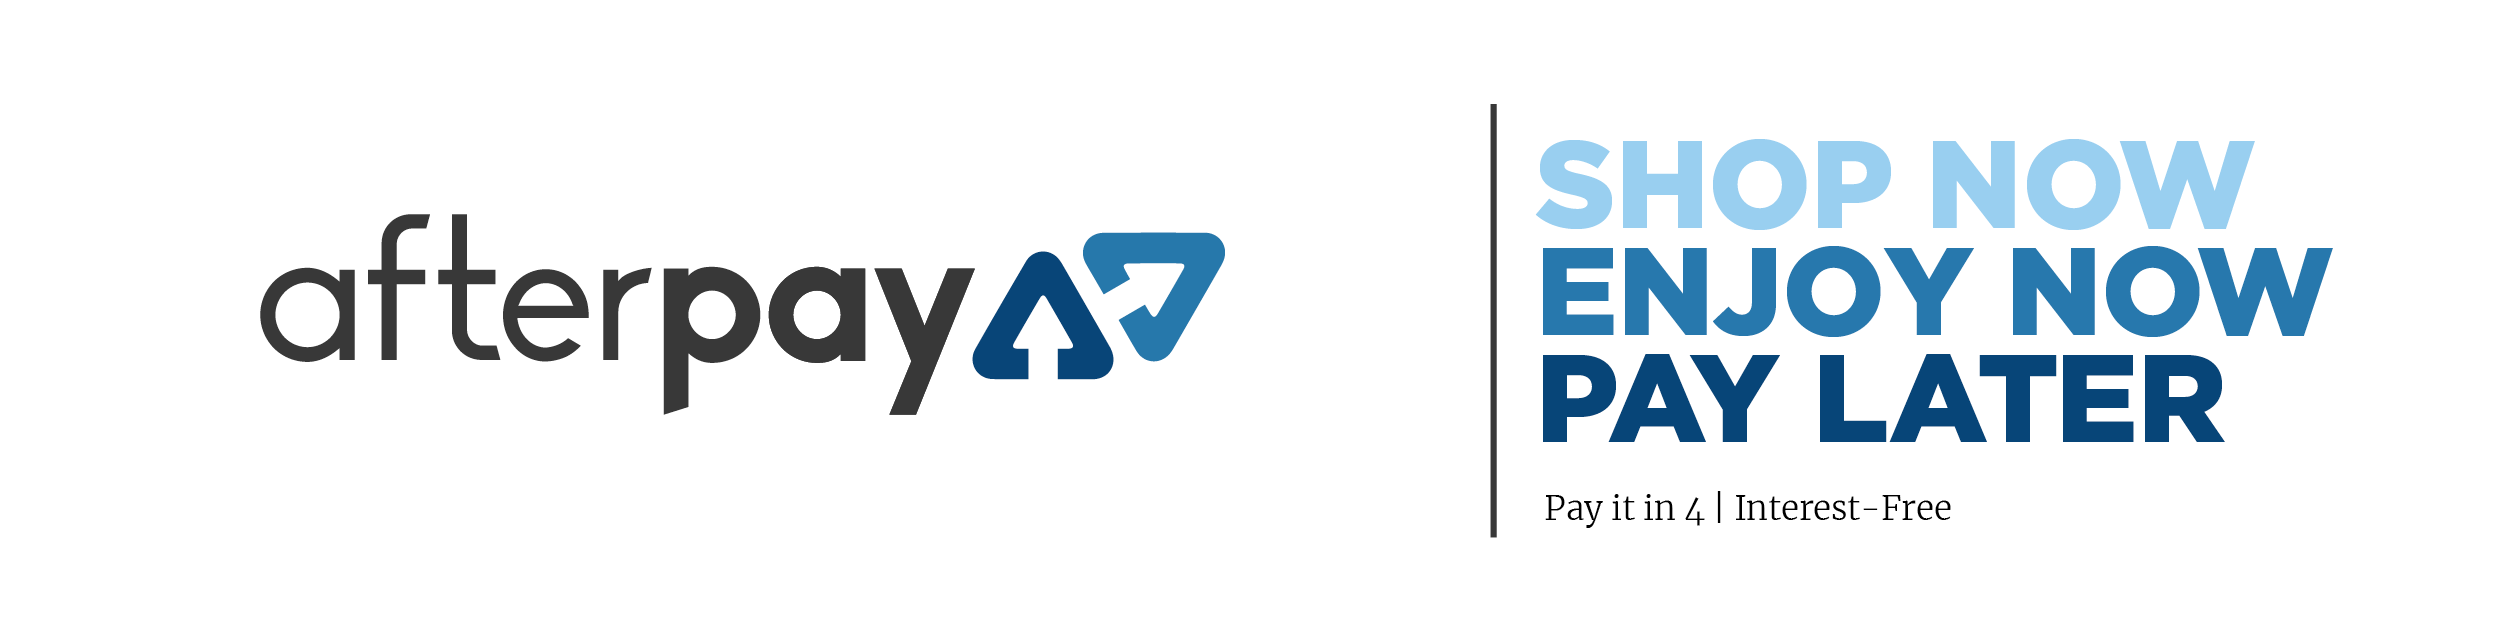 Afterpay-Banner